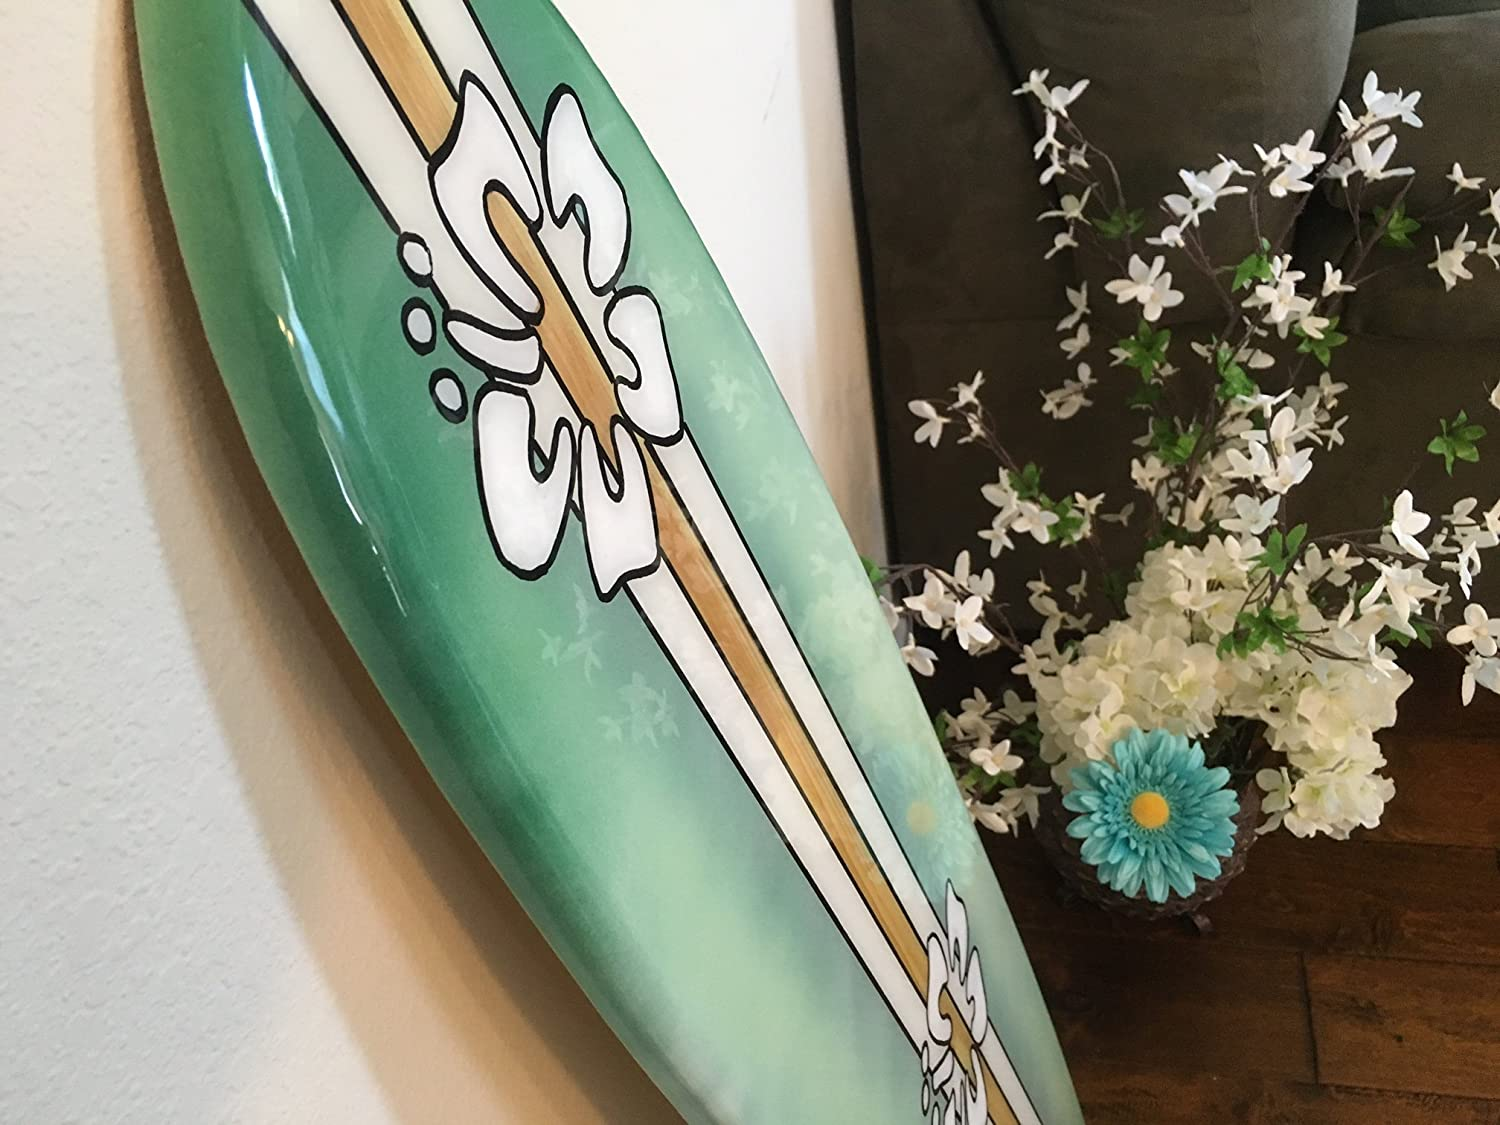 Amazon surfboard wall hanging four foot decorative surfboard amazon surfboard wall hanging four foot decorative surfboard wall art green with hibiscus handmade amipublicfo Images